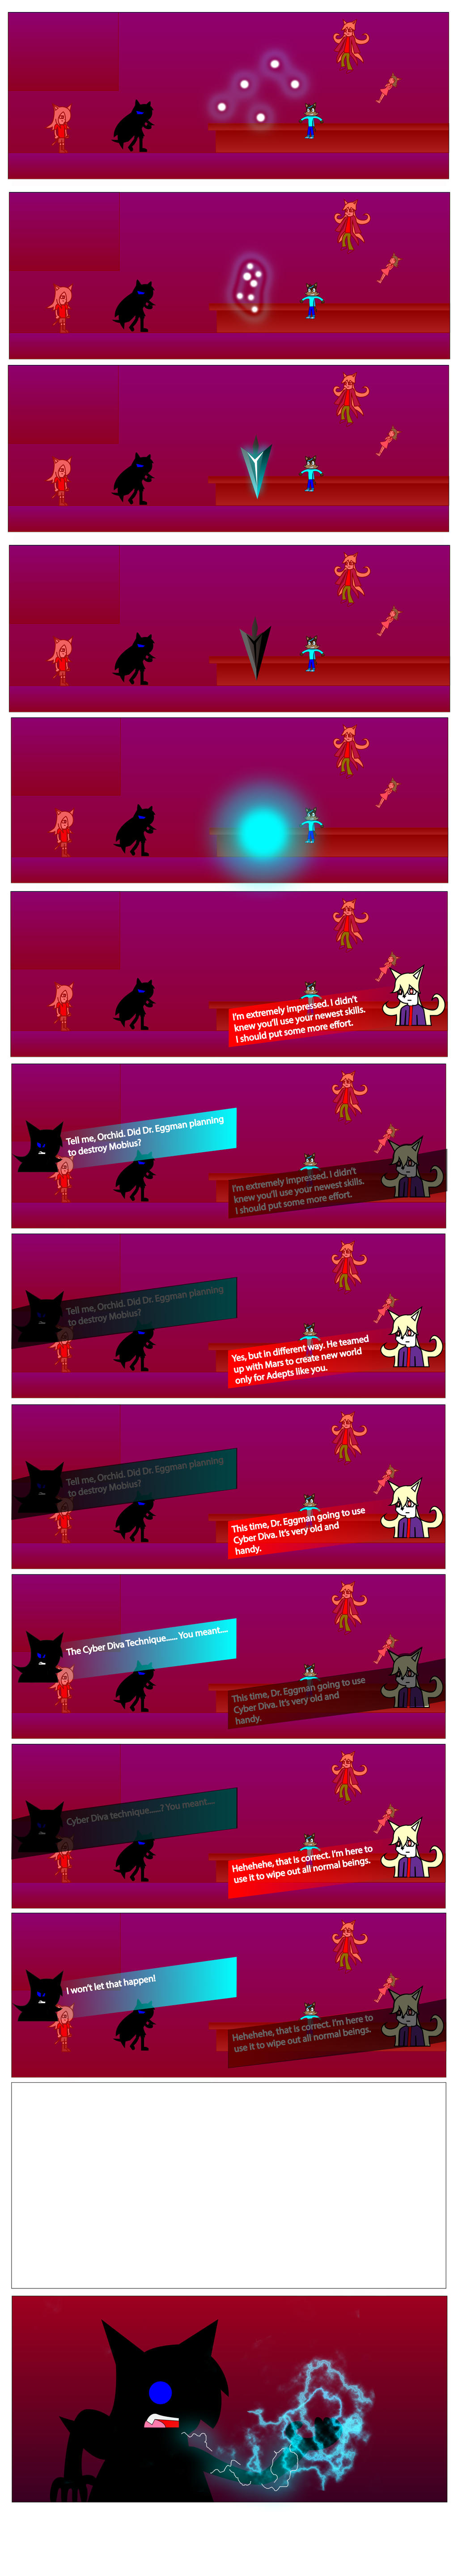 Darkness Impact Chapter 2 part 11 by BioProject04